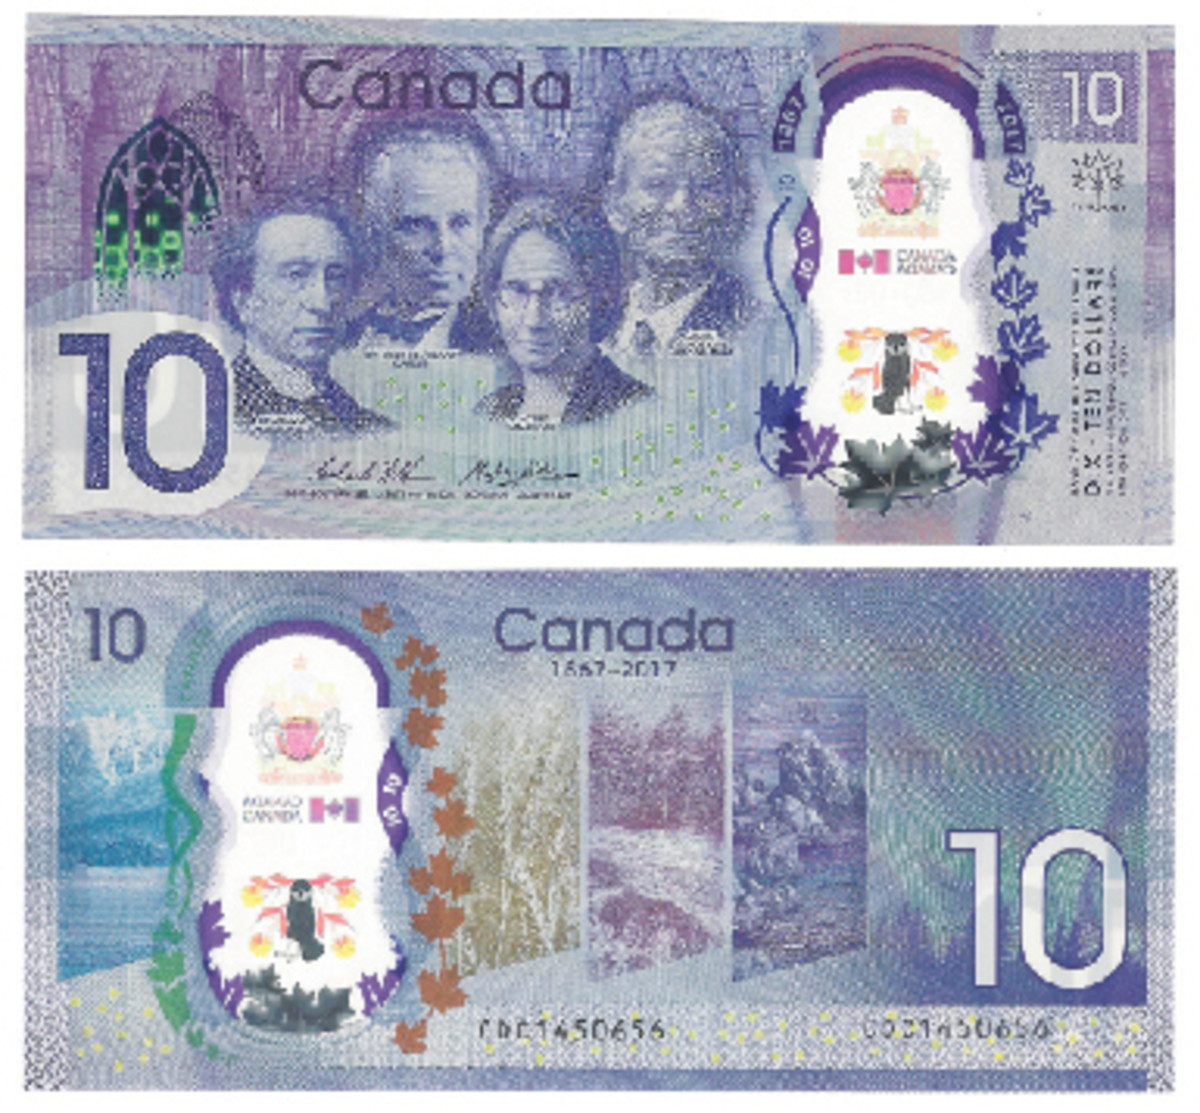 Canada came out with a new $10 for the 150th anniversary of its confederation in 1867. There are raised dots at upper left for the blind. The note is made of polymer.